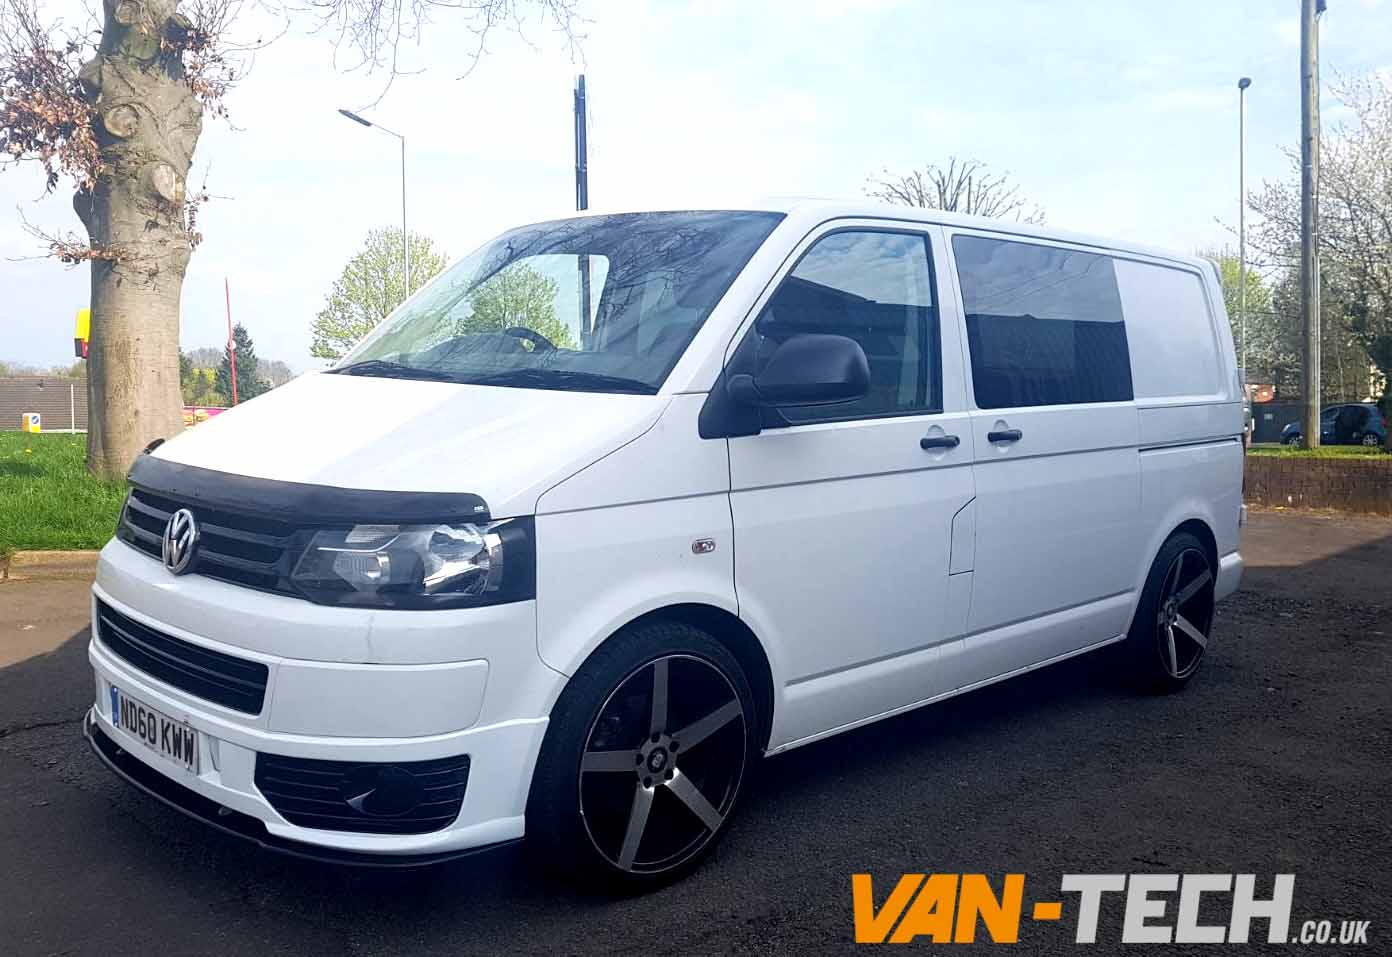 sold volkswagen transporter white t5 1 2010 diesel van tech. Black Bedroom Furniture Sets. Home Design Ideas